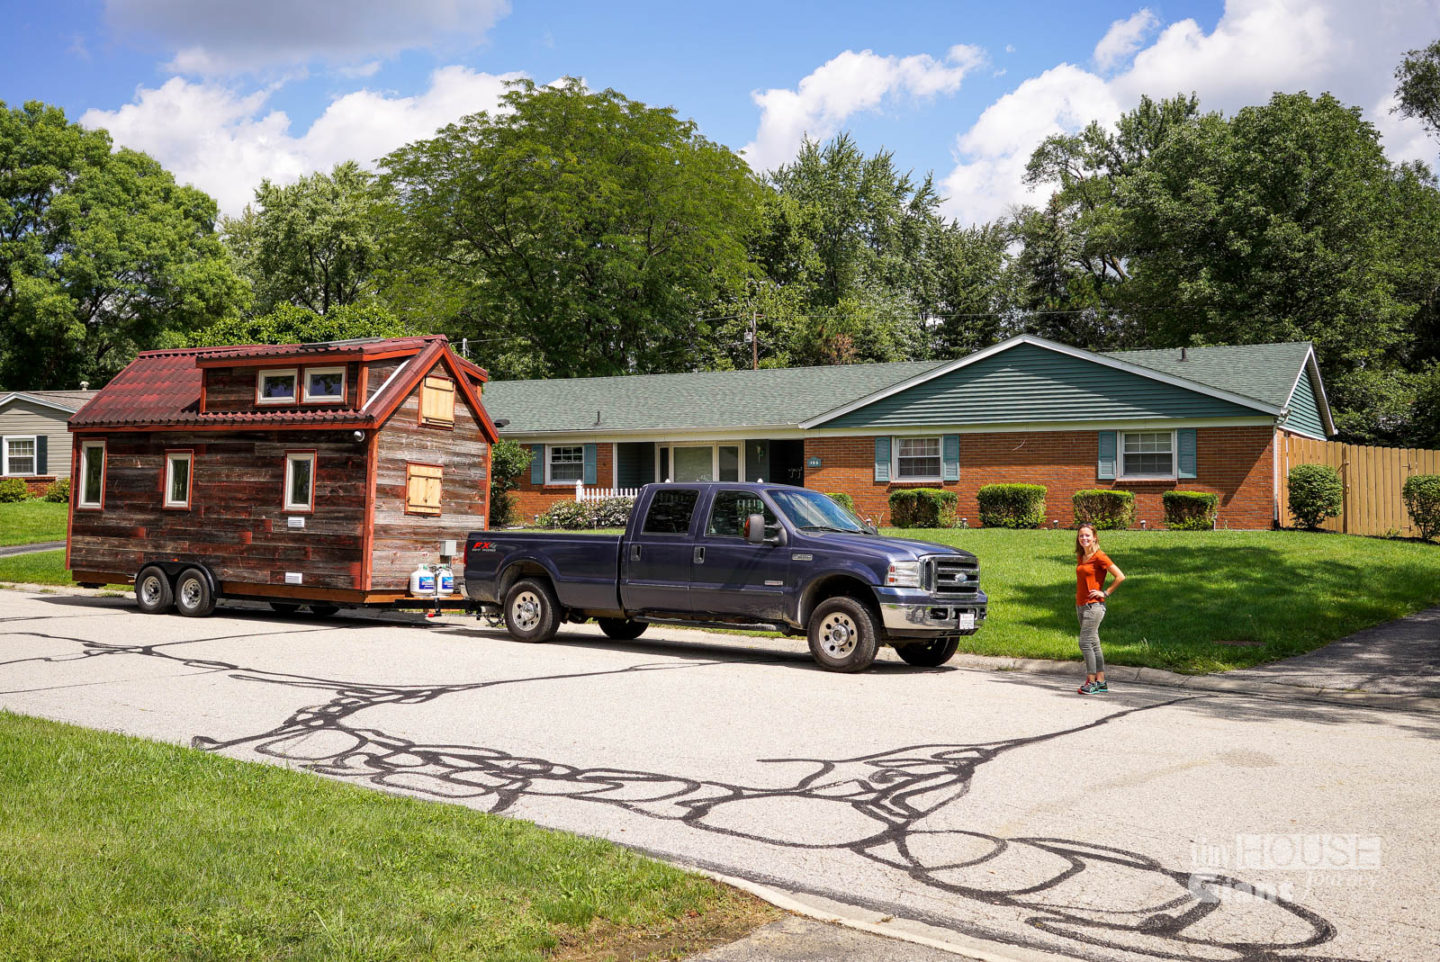 Centerville, OH: My Childhood Home & My Tiny Home